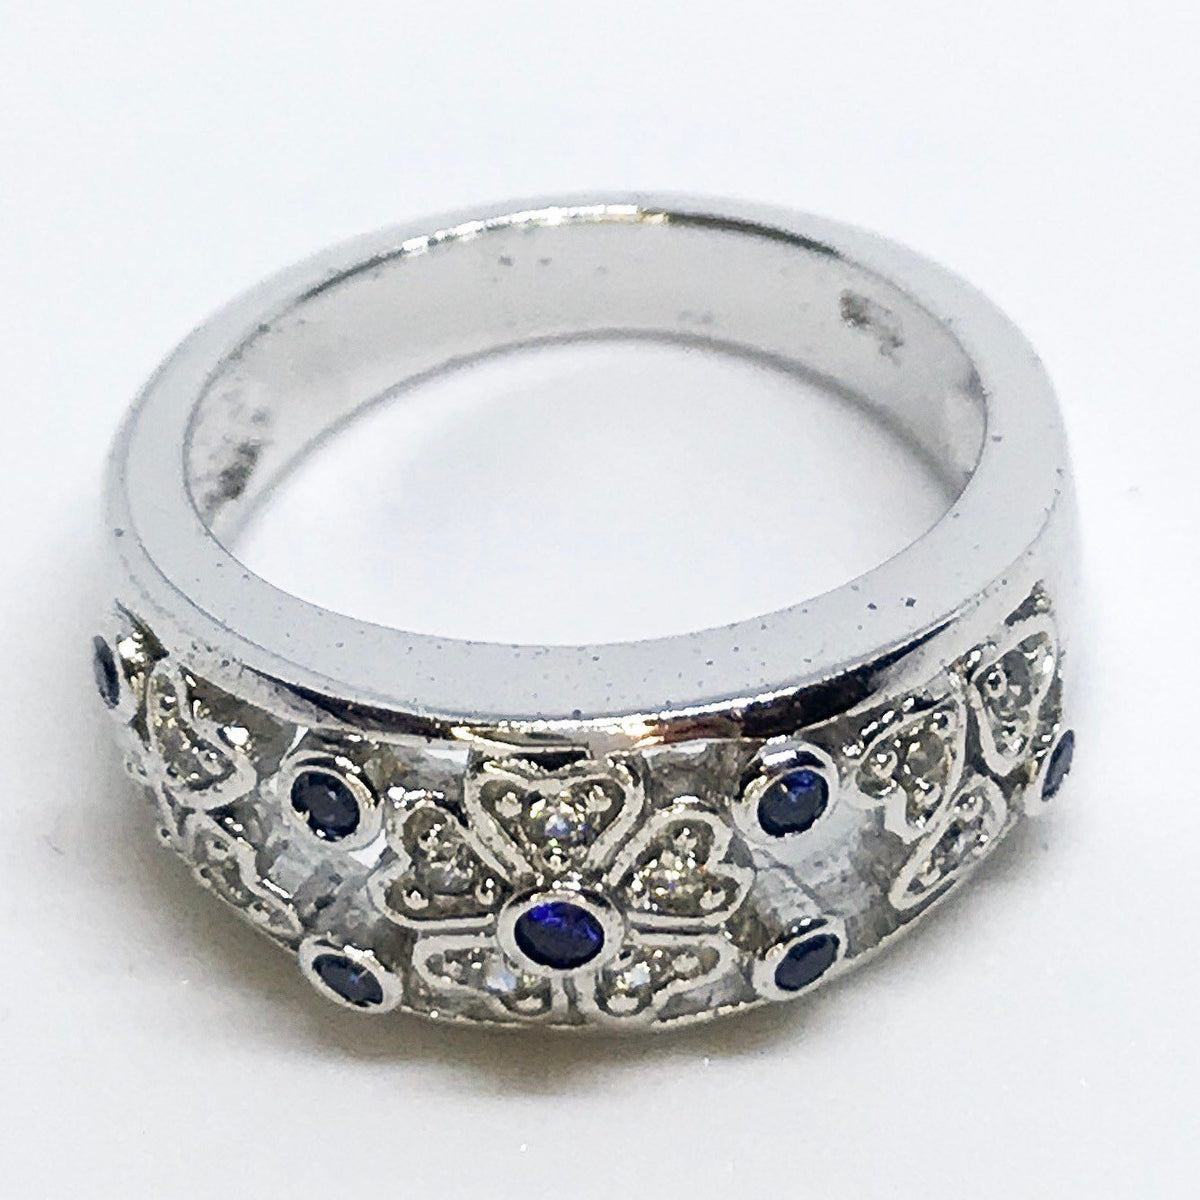 NEW 14K White Gold Layered on Sterling Silver Heart Flower with Blue Stones Ring